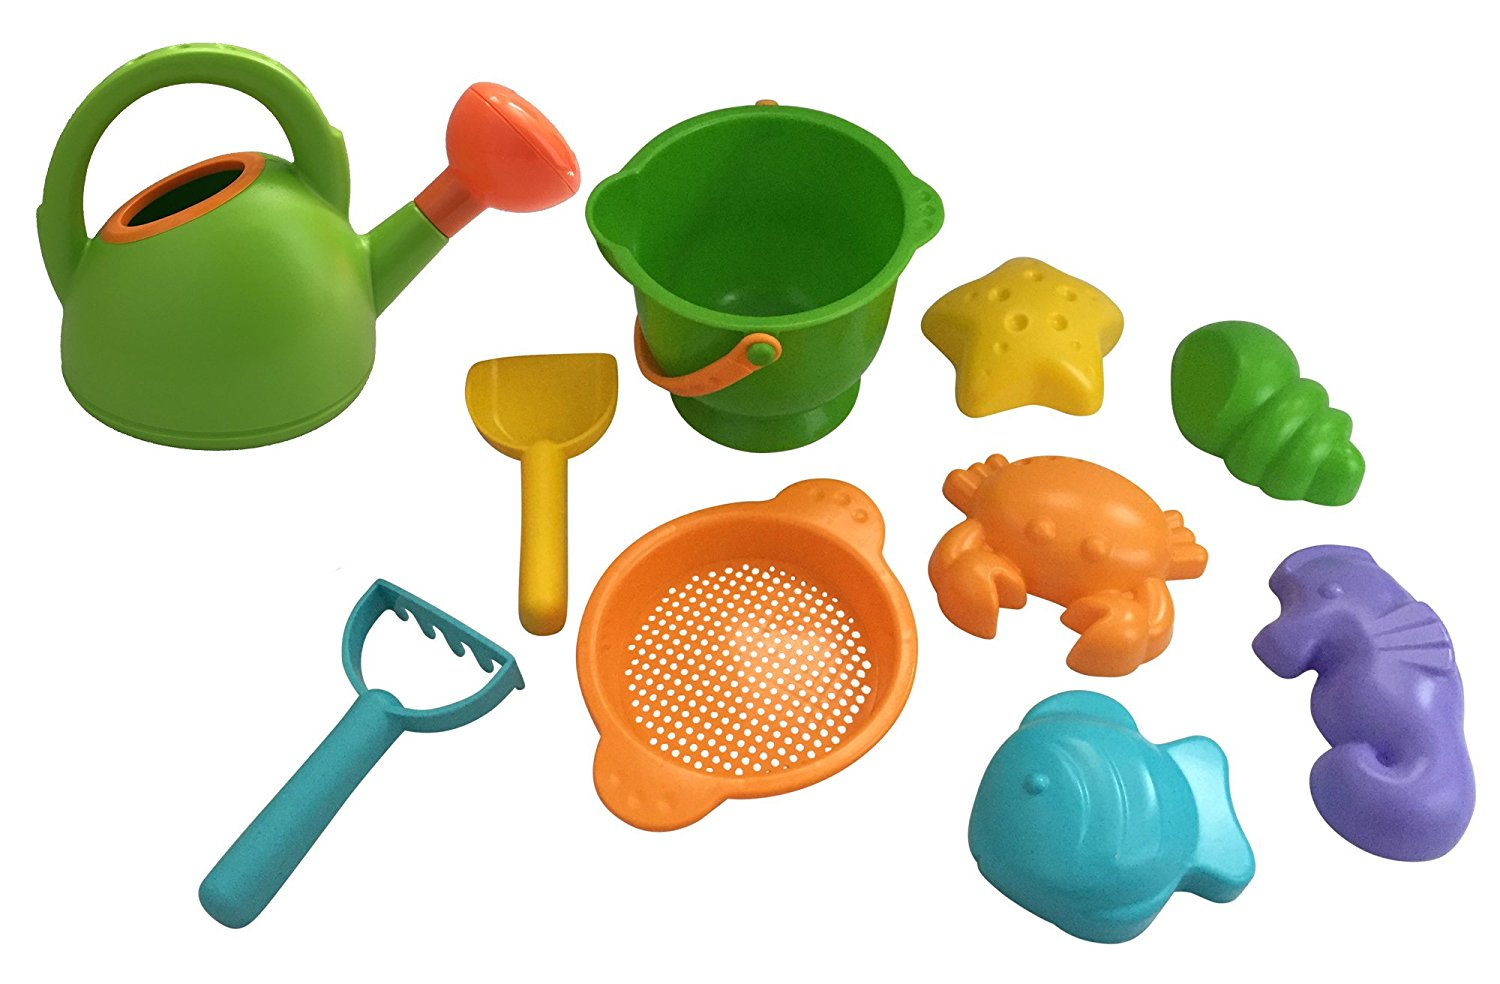 Durable Kids Sand Castle Creation Building Kit with Bucket, Shovels, Watering Can, and 5 Sand Molds